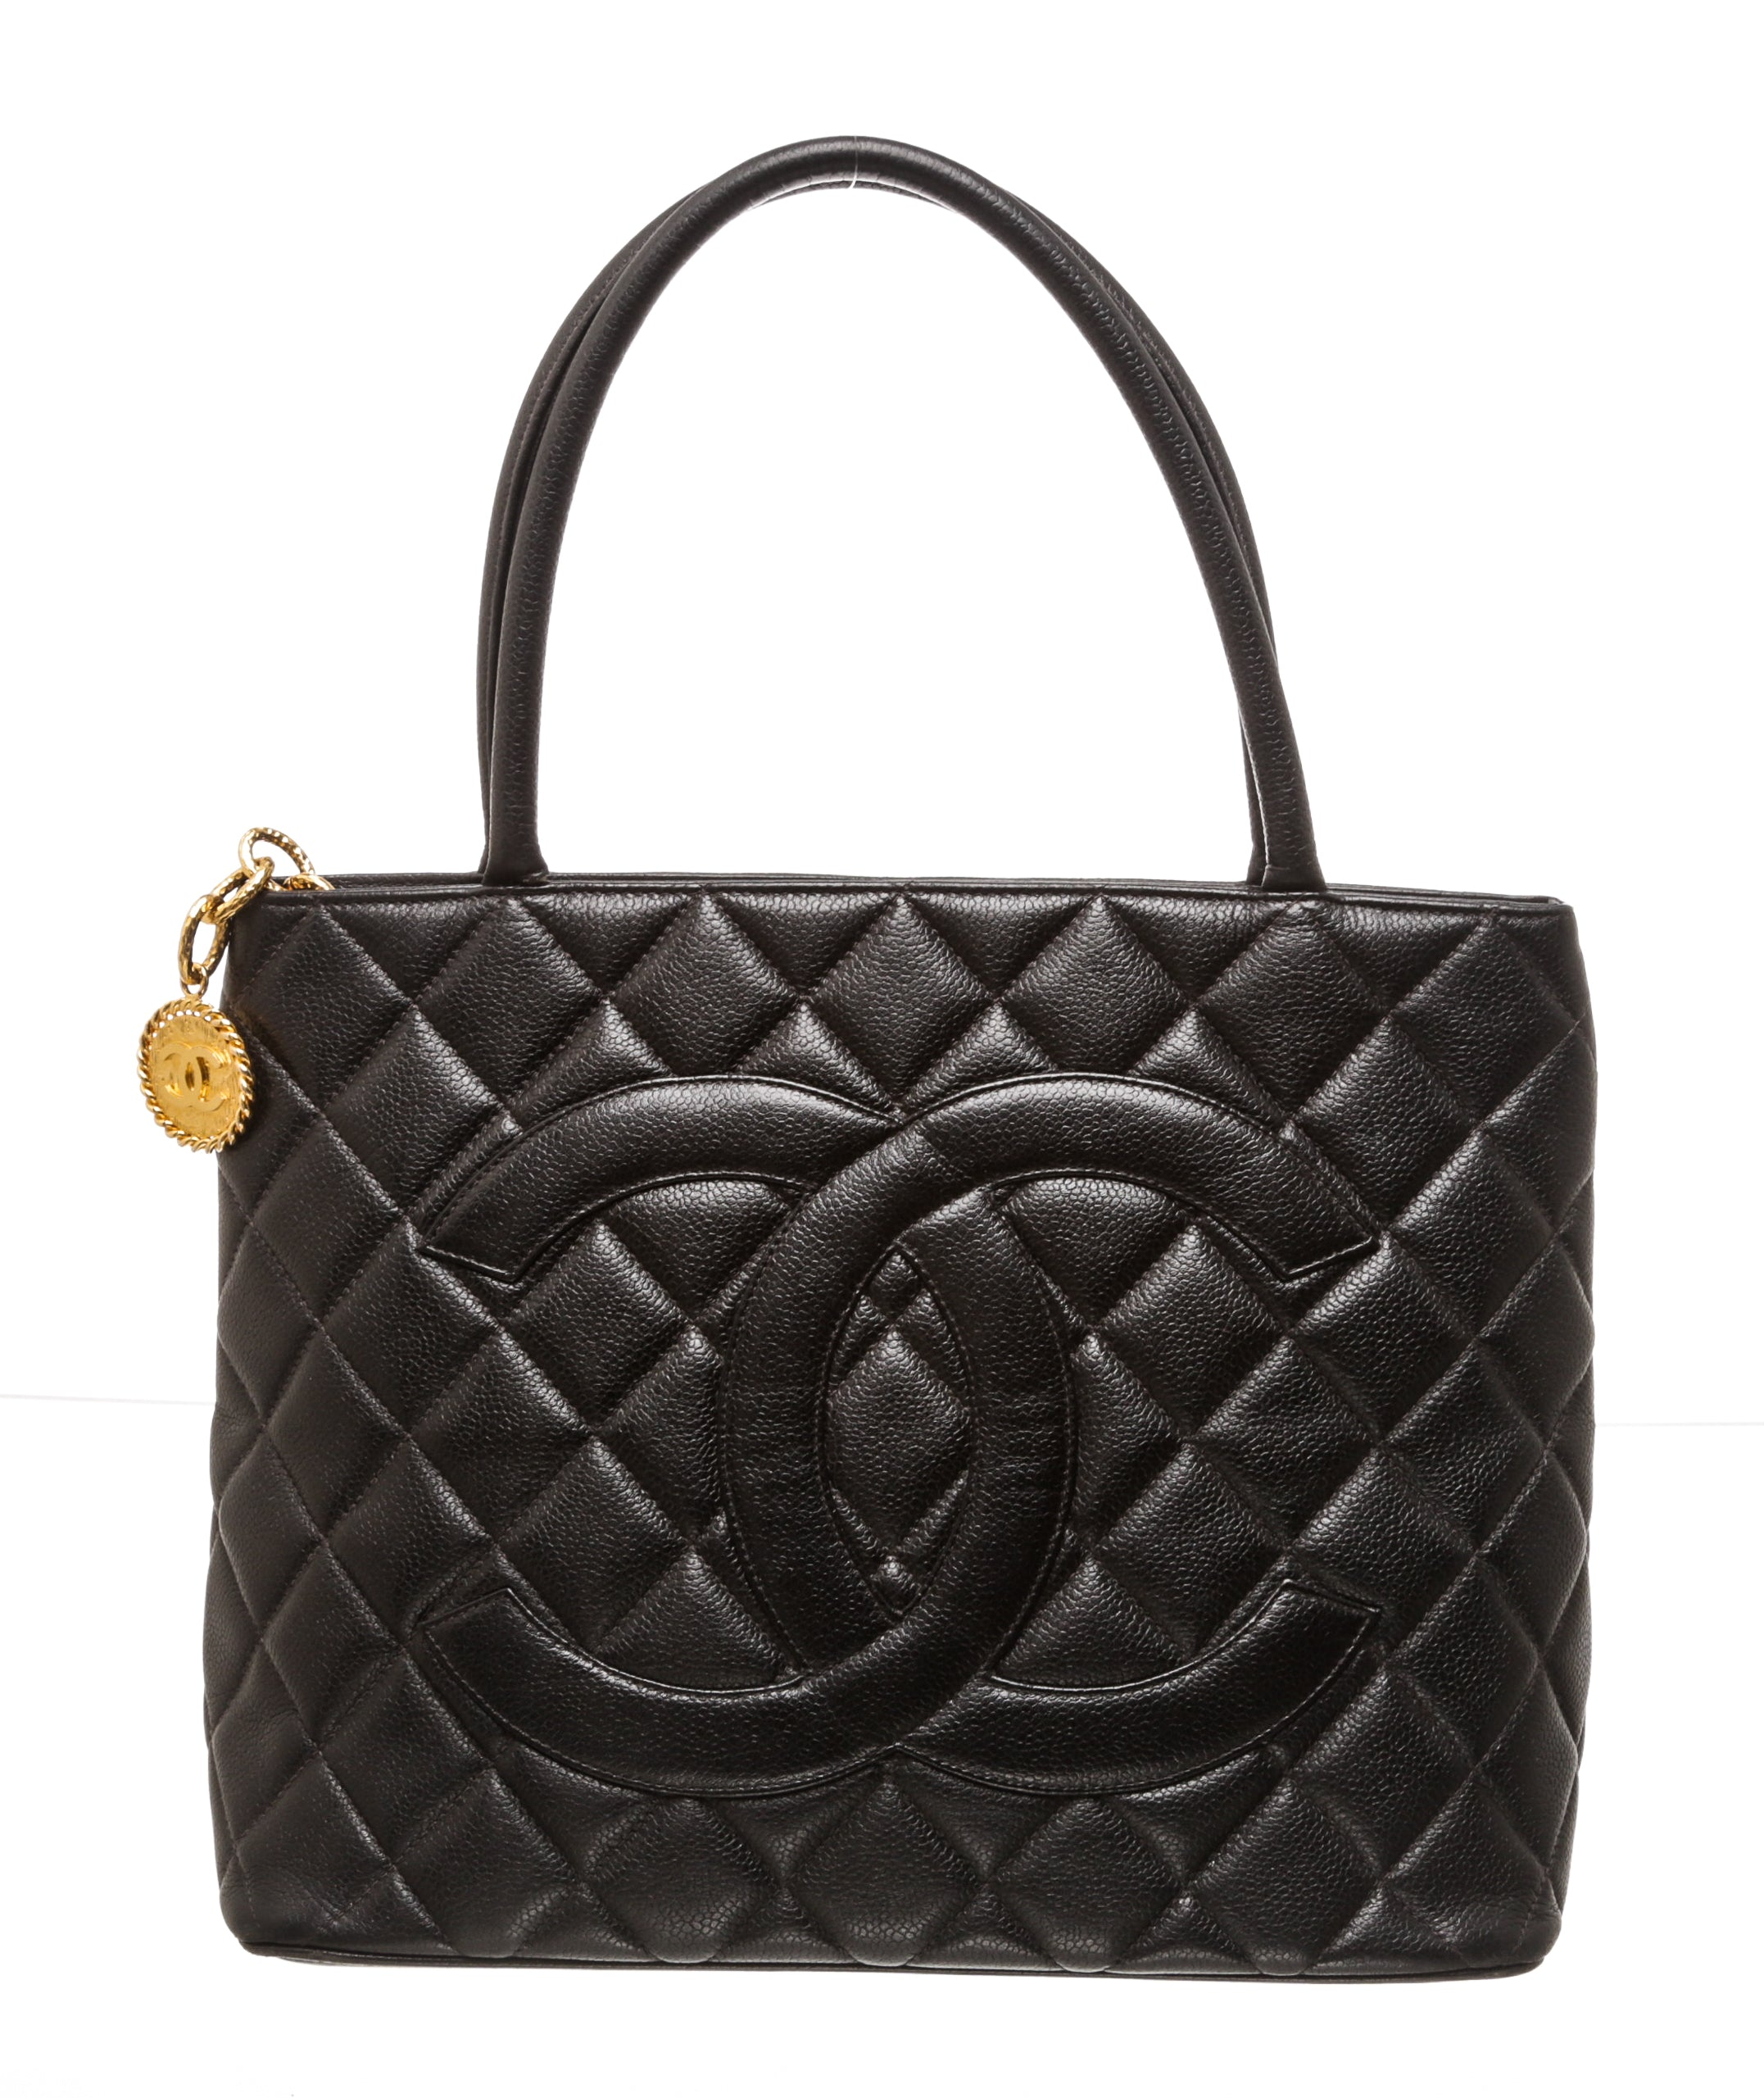 Chanel Black Caviar Quilted Leather Medallion Tote Bag